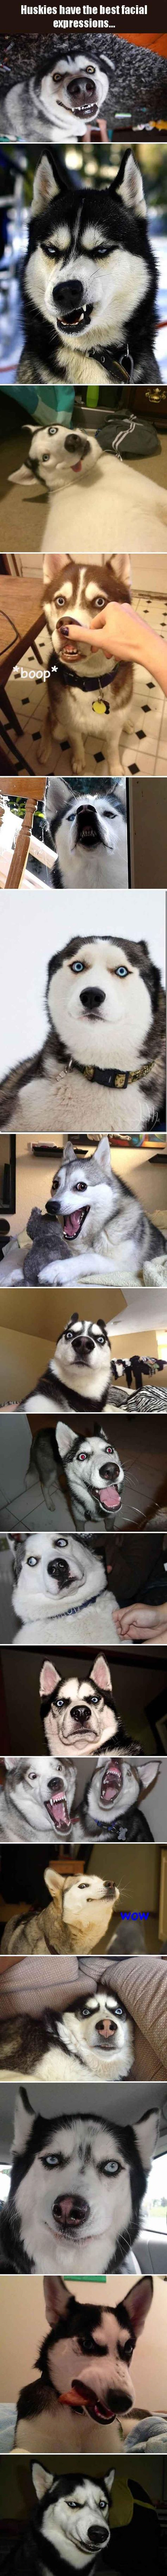 huskies have the best facial expressions